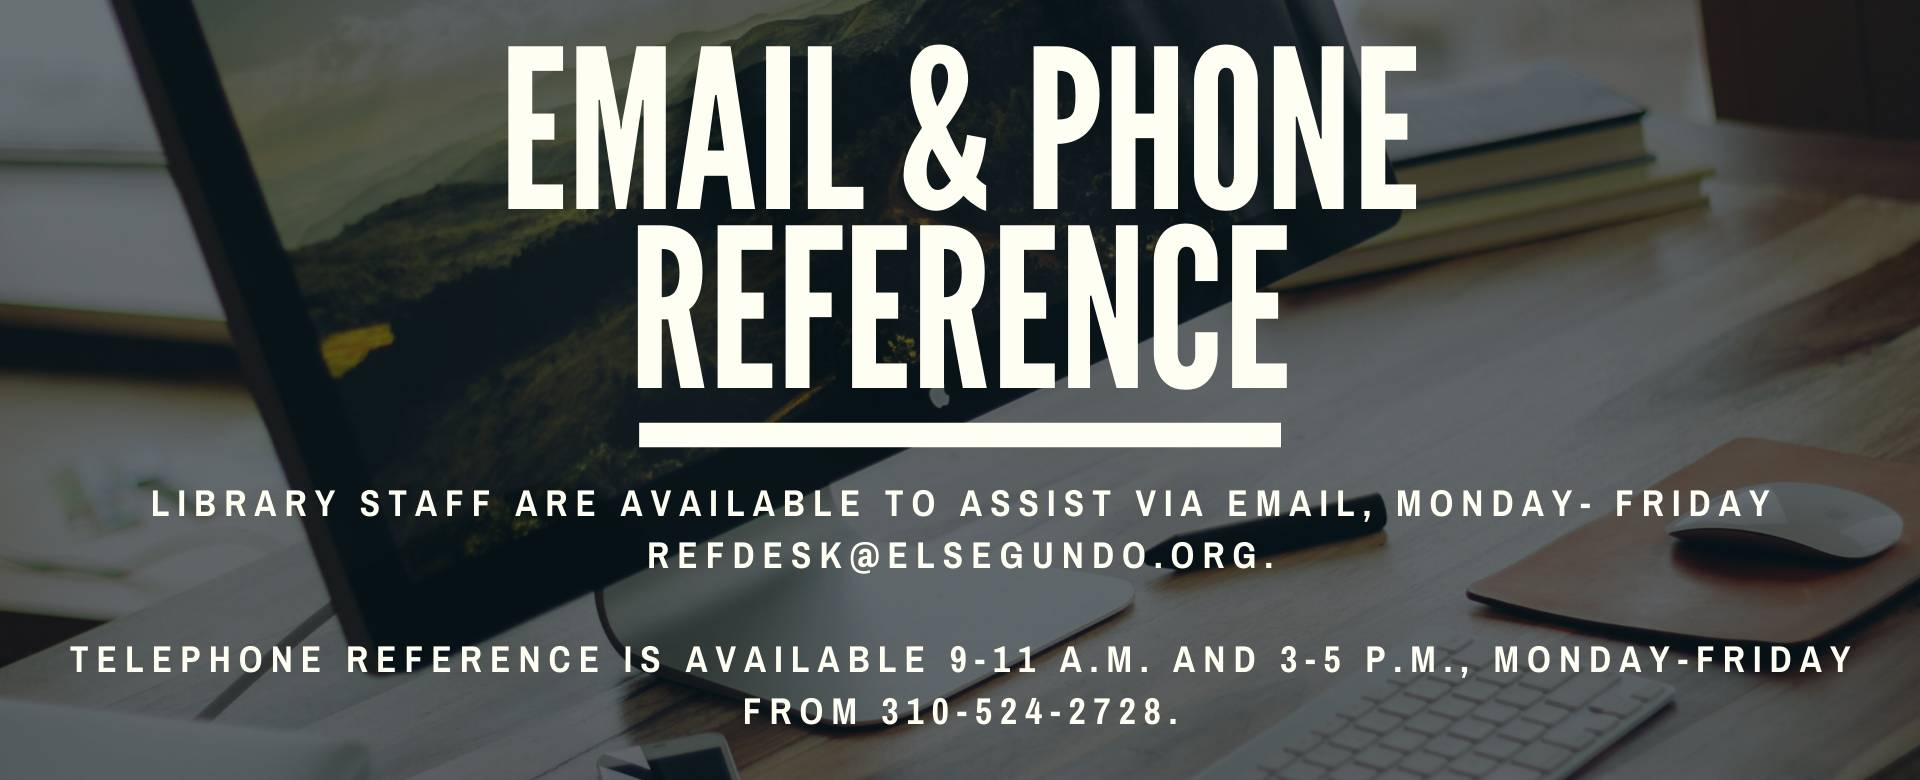 Website Banner for email and phone reference